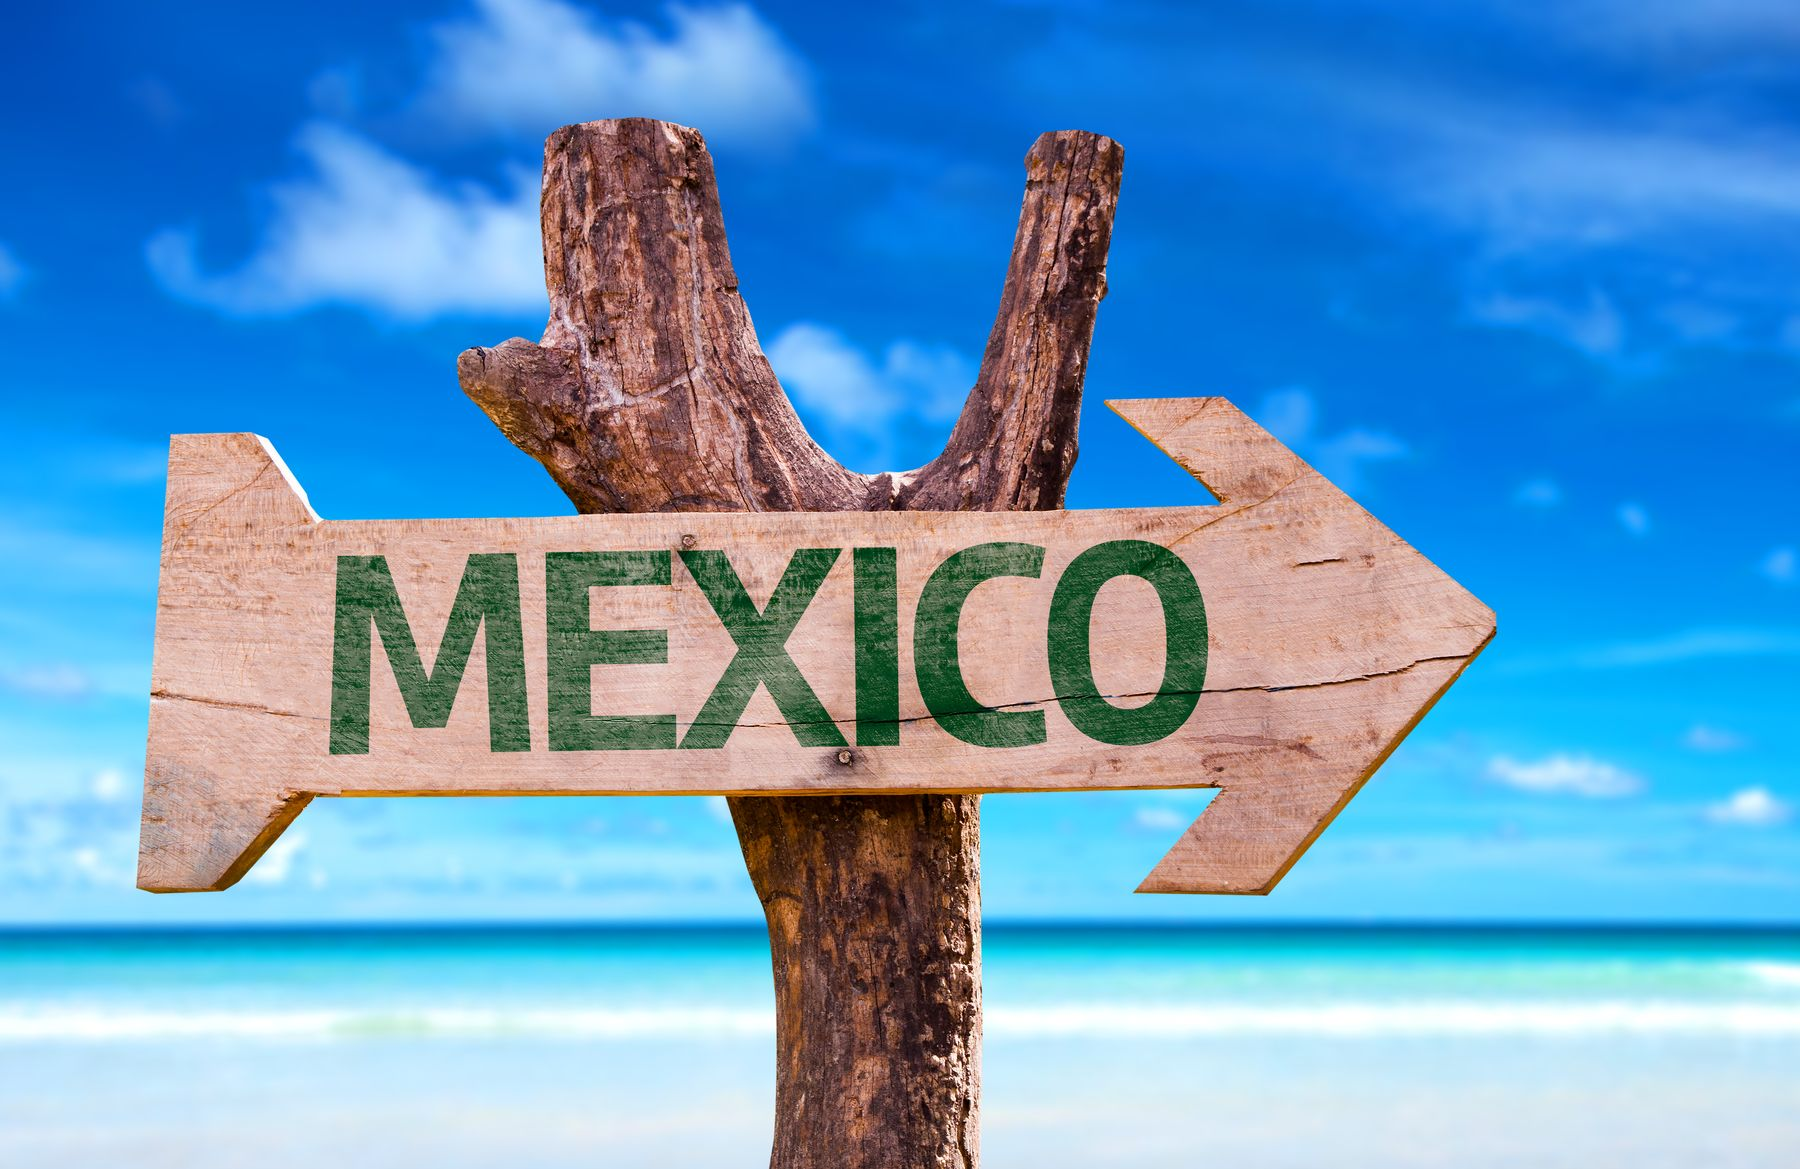 sign by the beach pointing towards Mexico